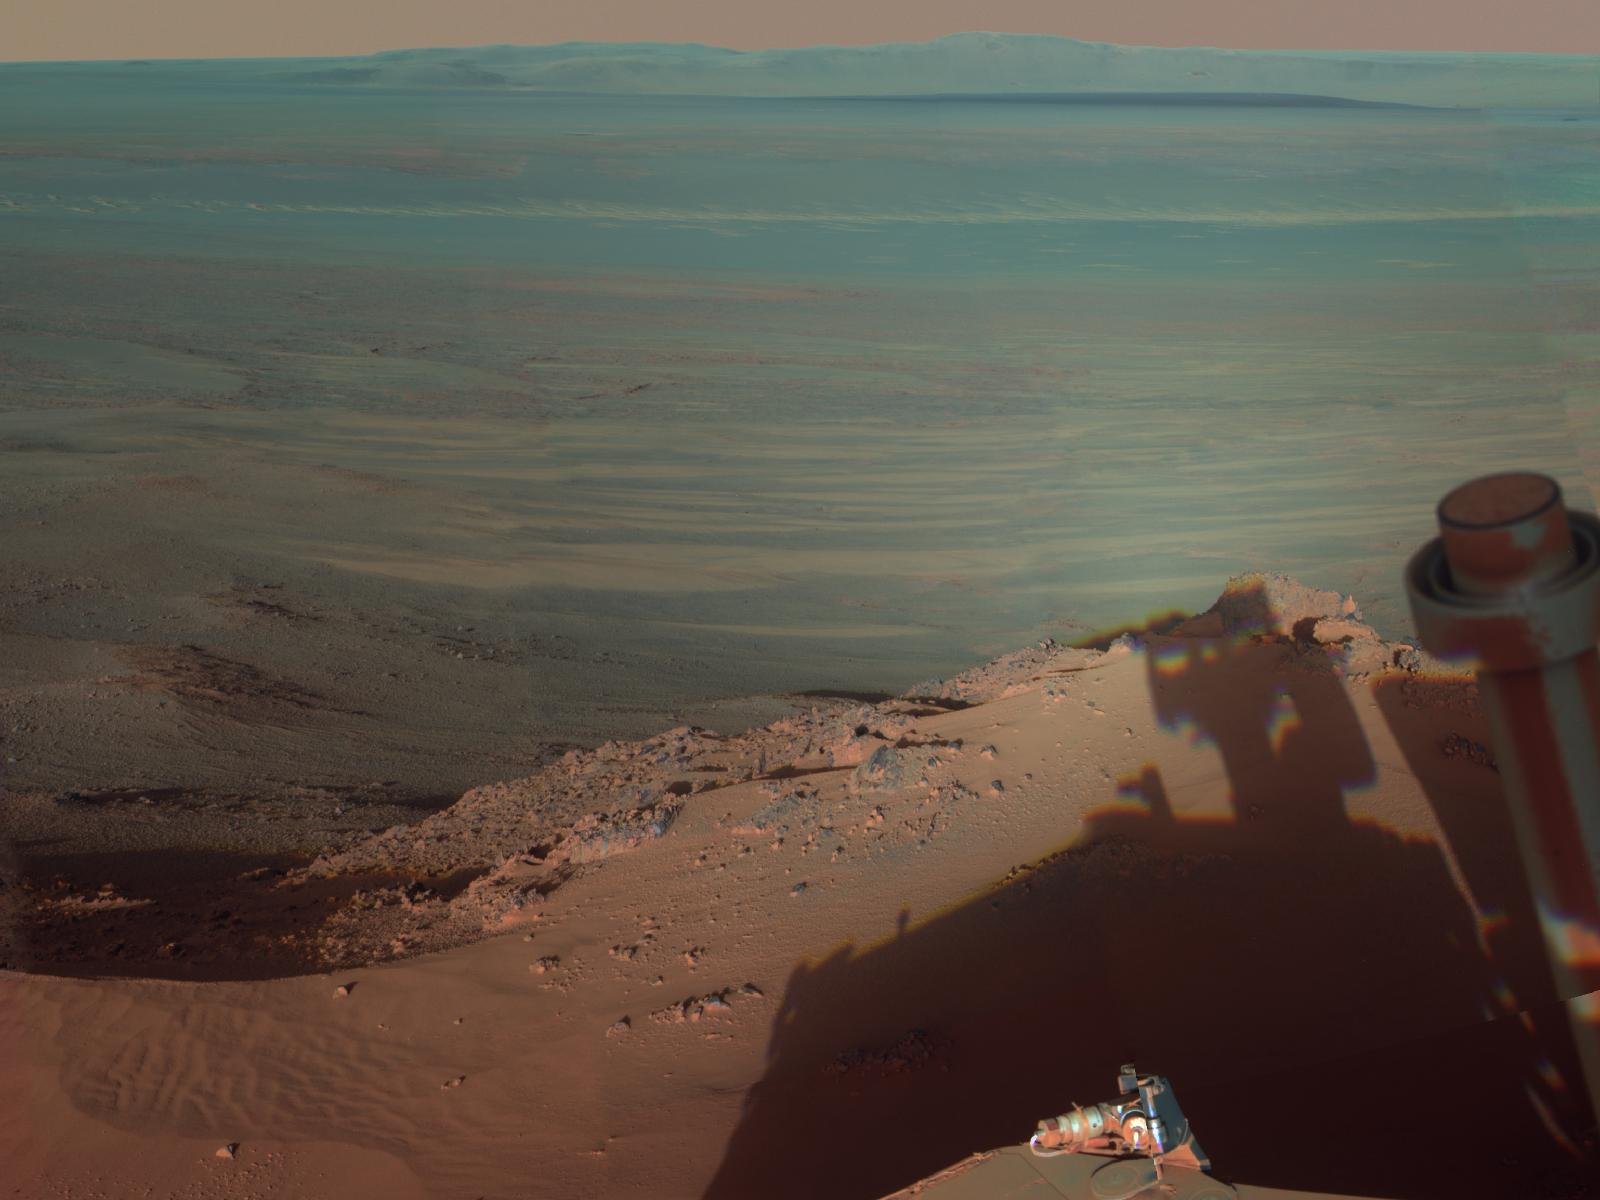 Mars Marathon: NASA's Opportunity Rover Near Finish Line of Martian Race